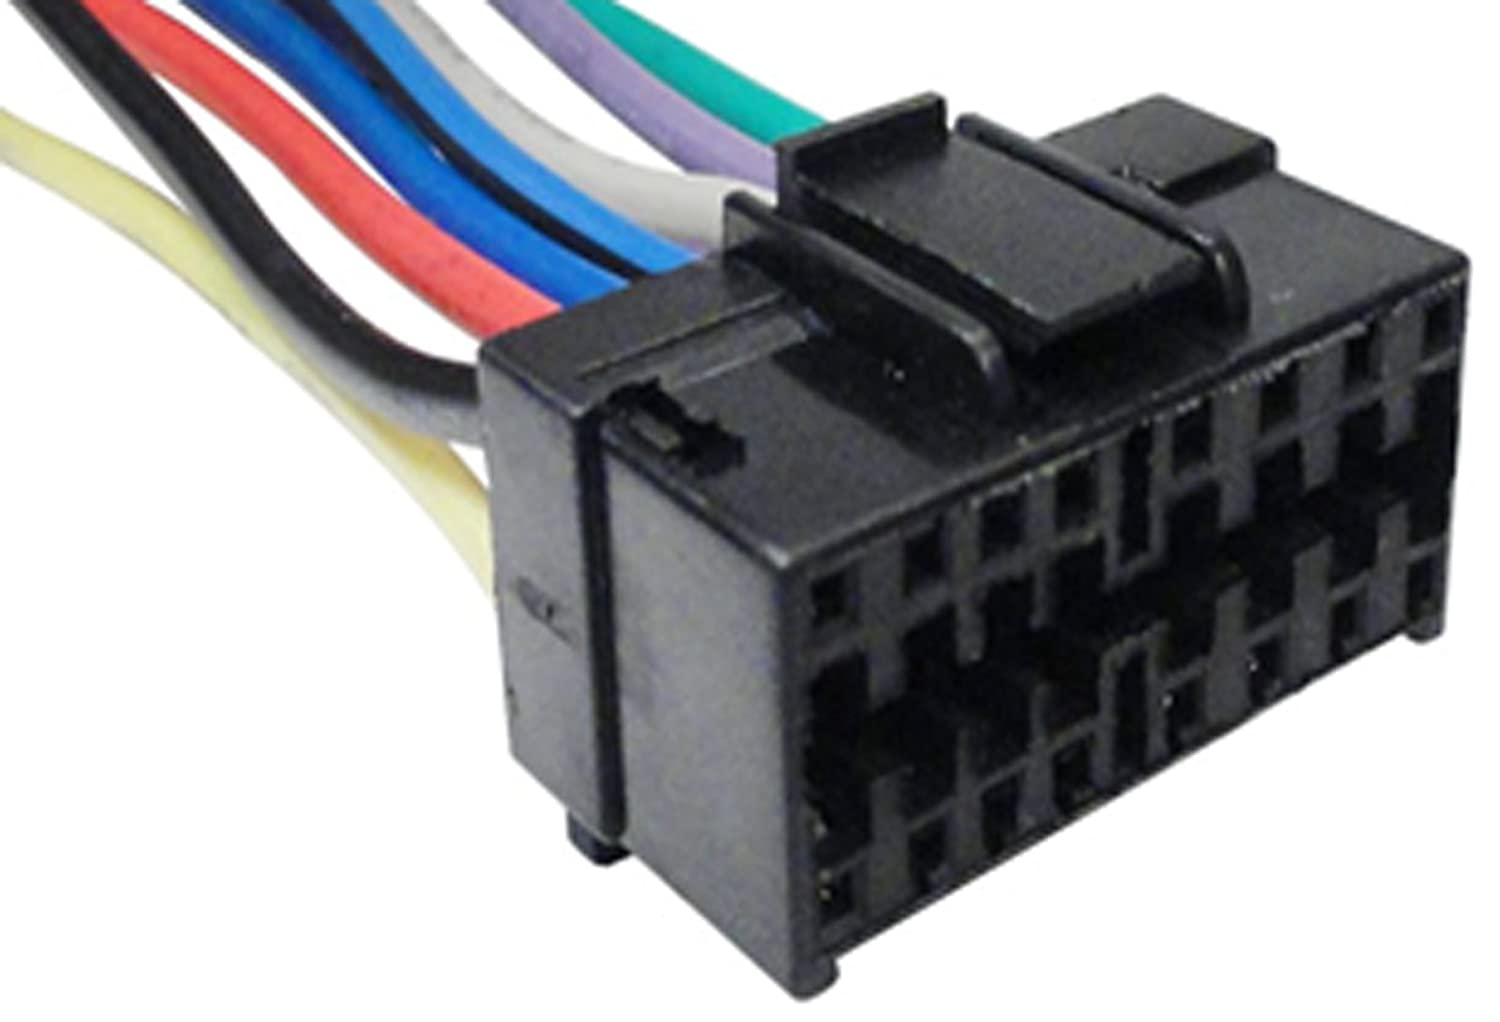 61PGr49b4wL._SL1500_ amazon com sony wiring harness 16 pin copper sy16 automotive sony wiring harness at crackthecode.co